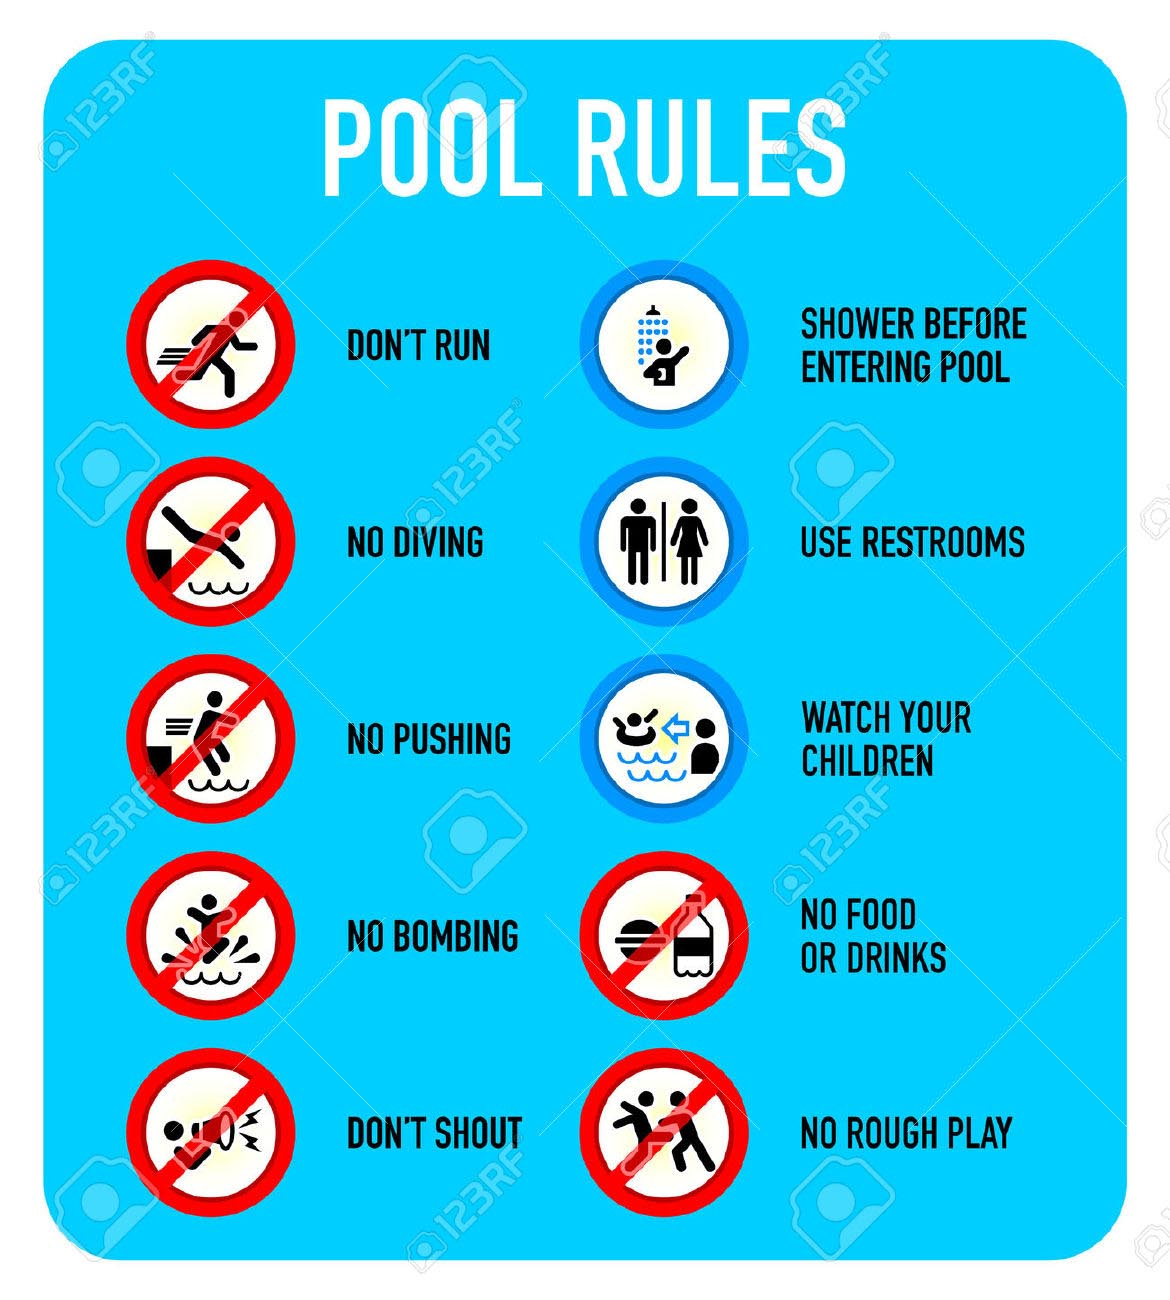 31 Creative Swimming Pools Rules And Regulations